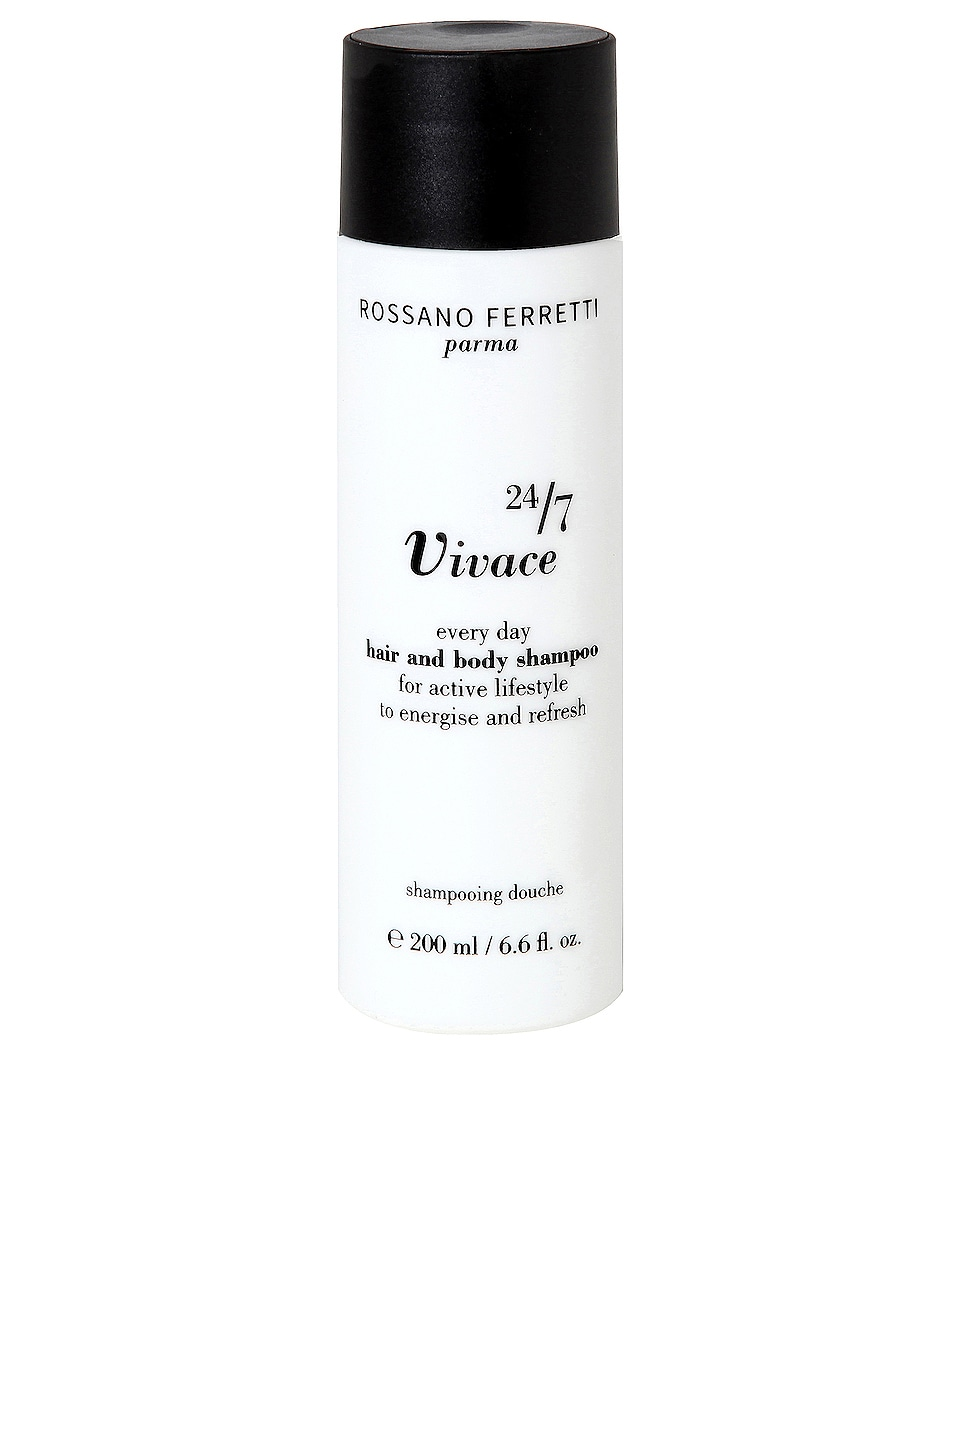 Rossano Ferretti Vivace 24/7 Everyday Hair & Body Shampoo